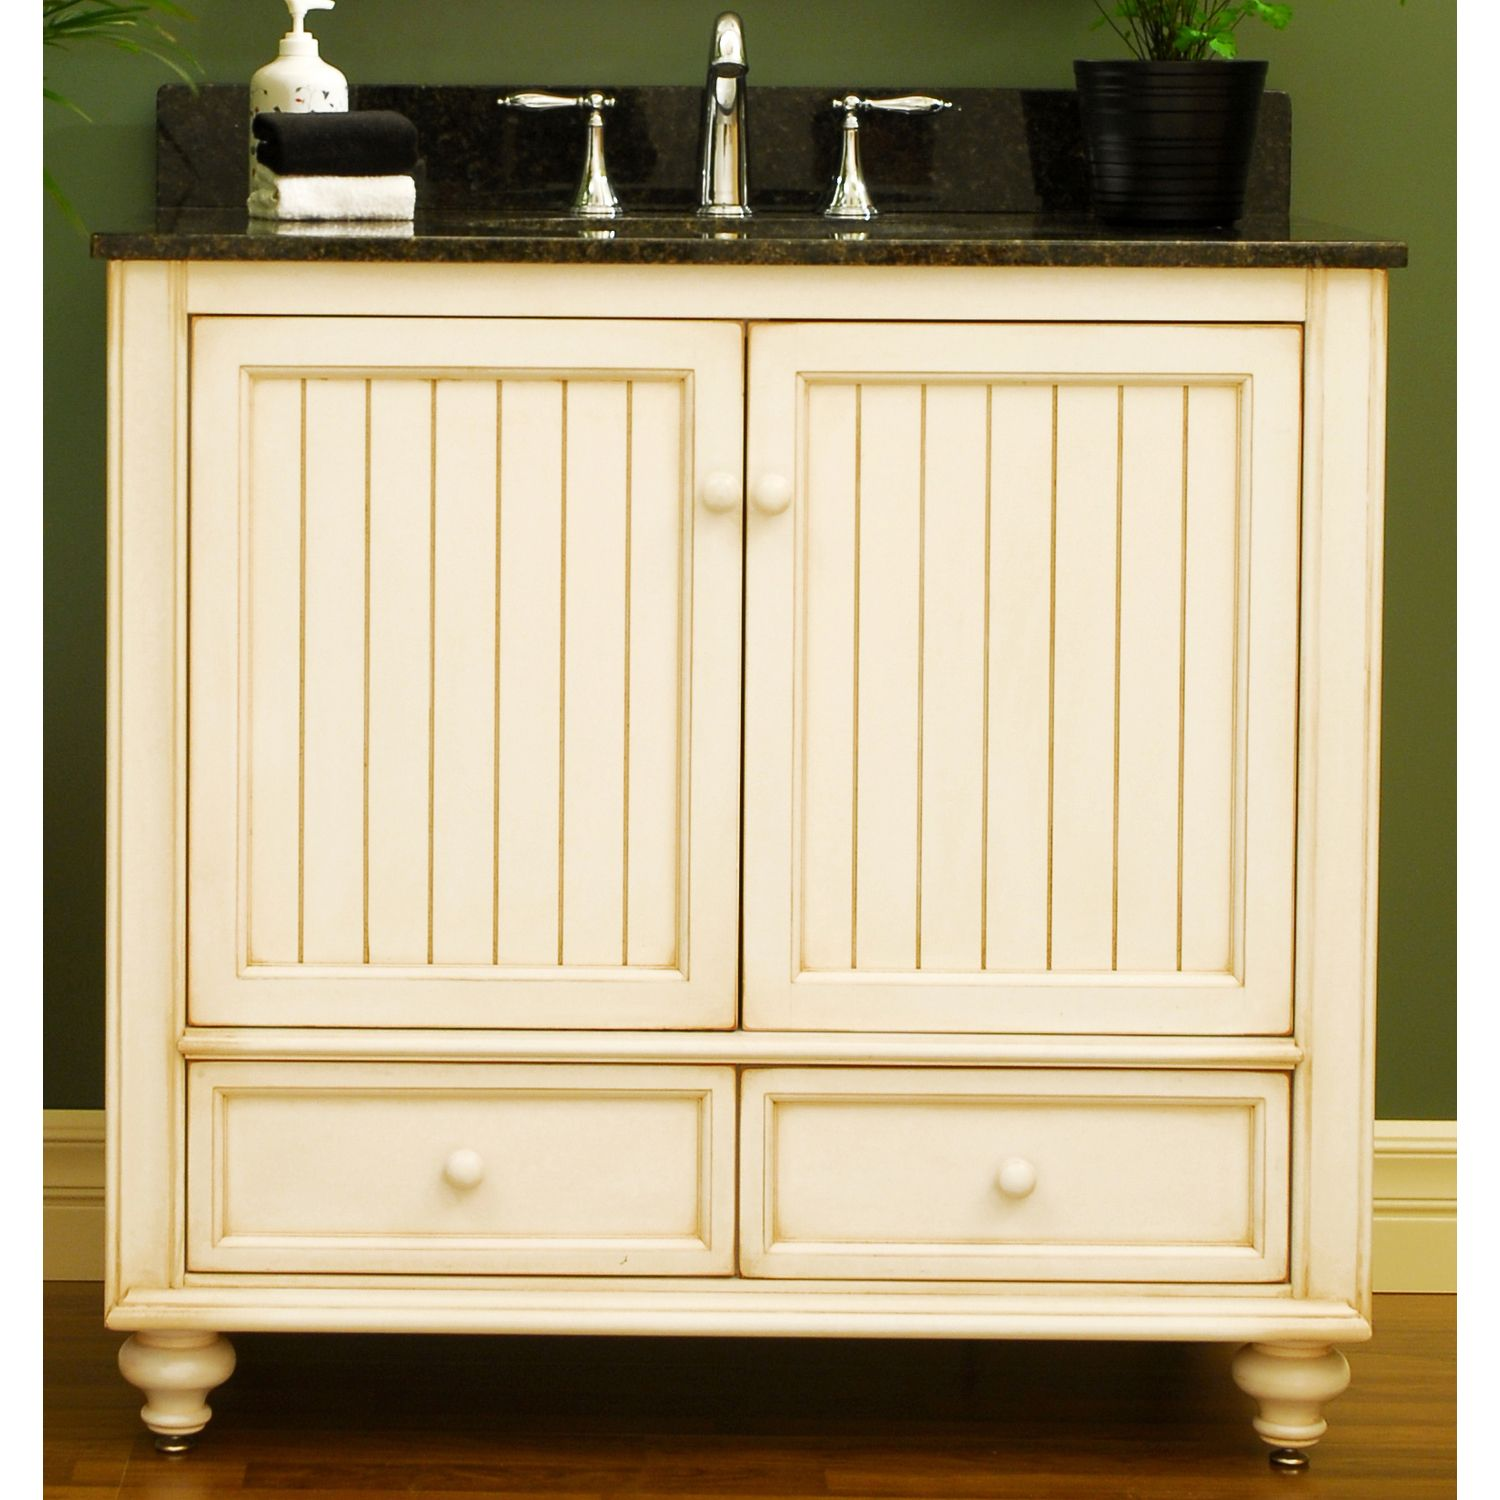 Beach Cottage Cabinets Cottage Style Wood Bathroom - Cottage style bathroom vanities cabinets for bathroom decor ideas